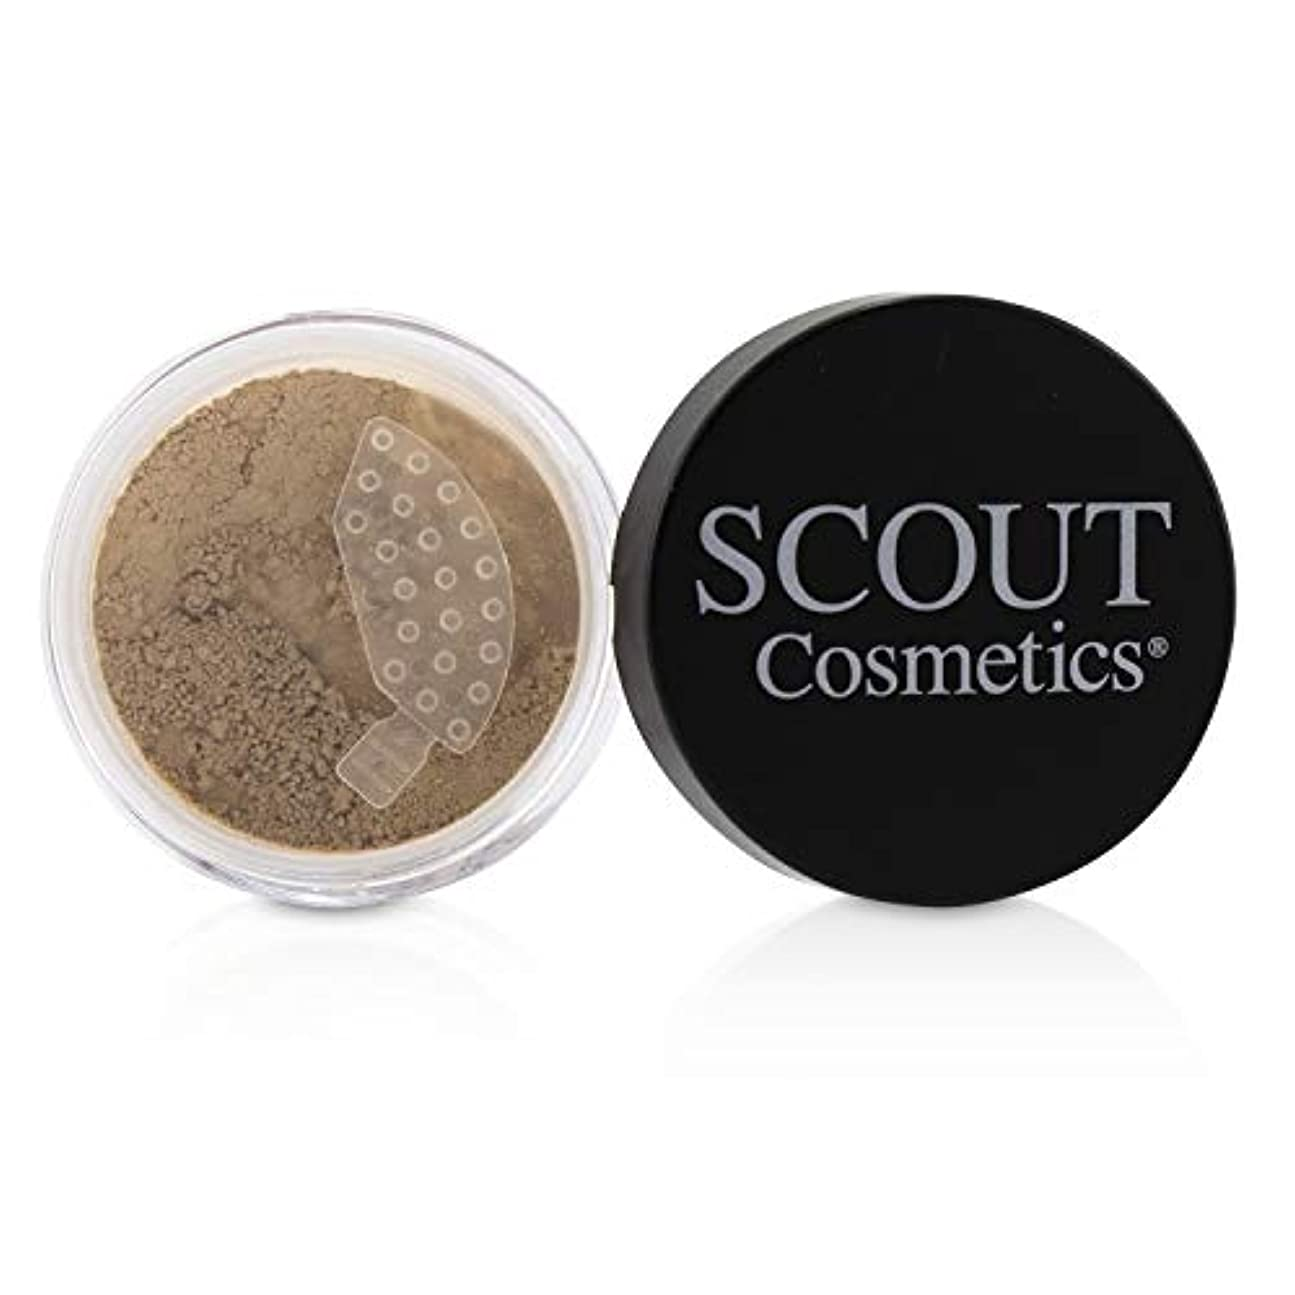 ヒューマニスティック悲劇舌なSCOUT Cosmetics Mineral Powder Foundation SPF 20 - # Shell 8g/0.28oz並行輸入品